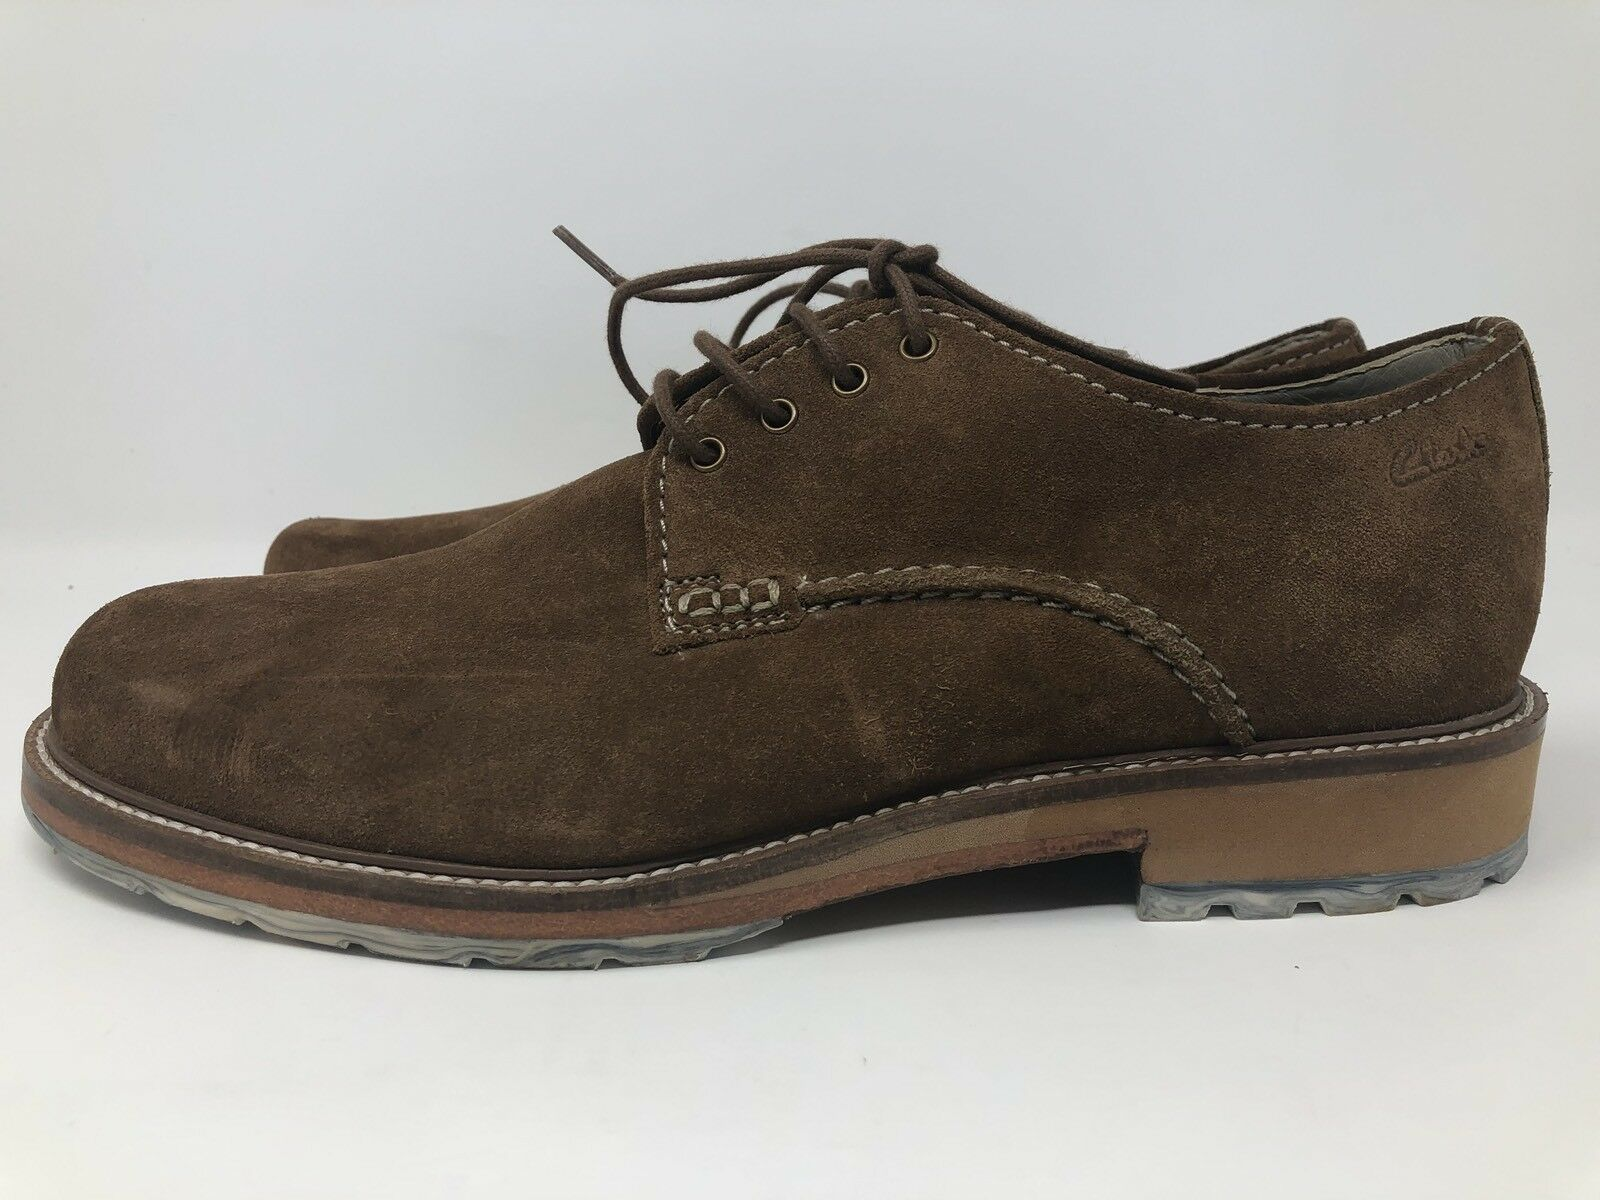 New Clarks Originals Desert London Brown Suede Size 9